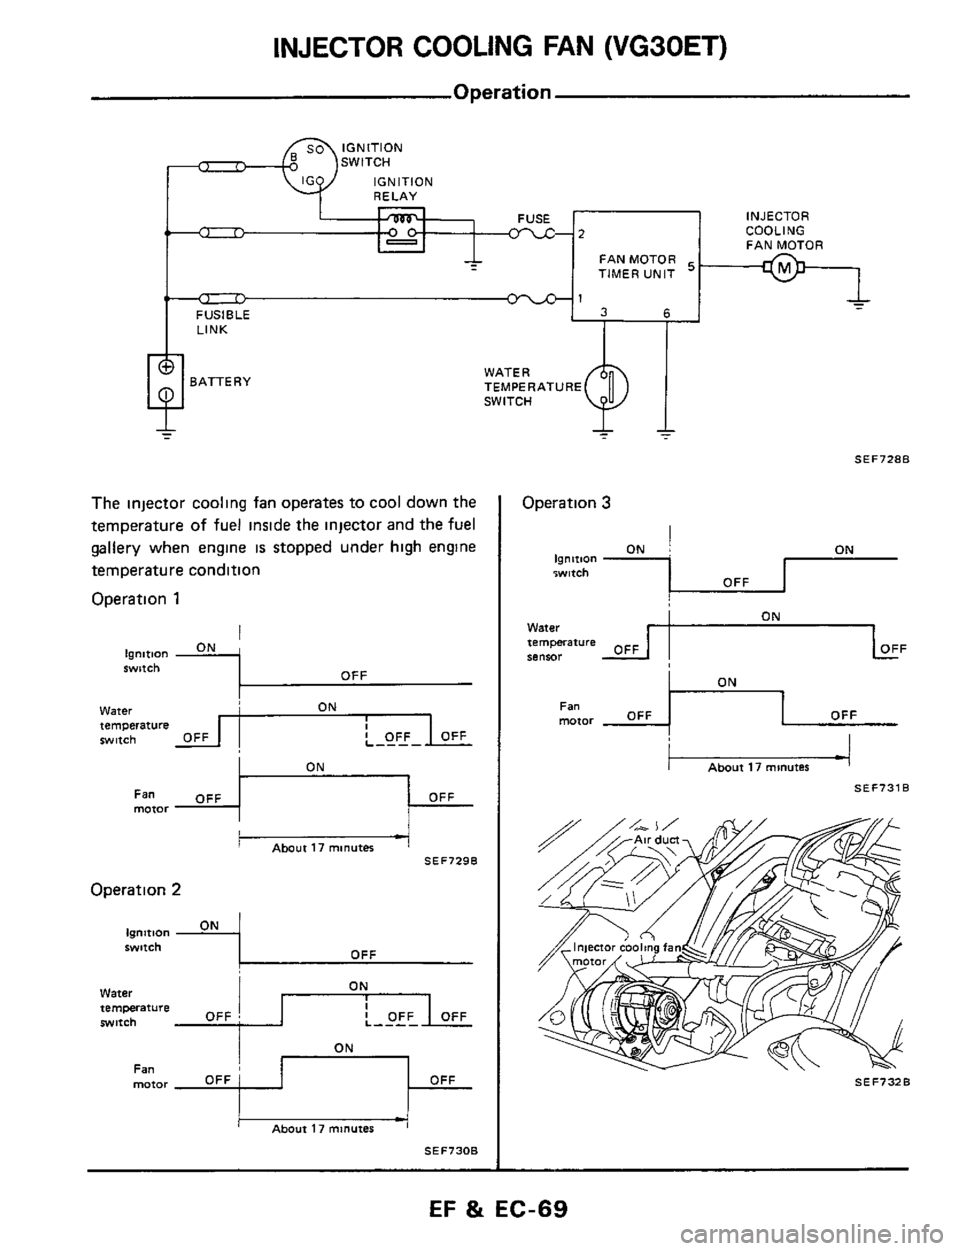 Nissan 300zx 1984 z31 engine fuel and emission control system workshop manual page 69